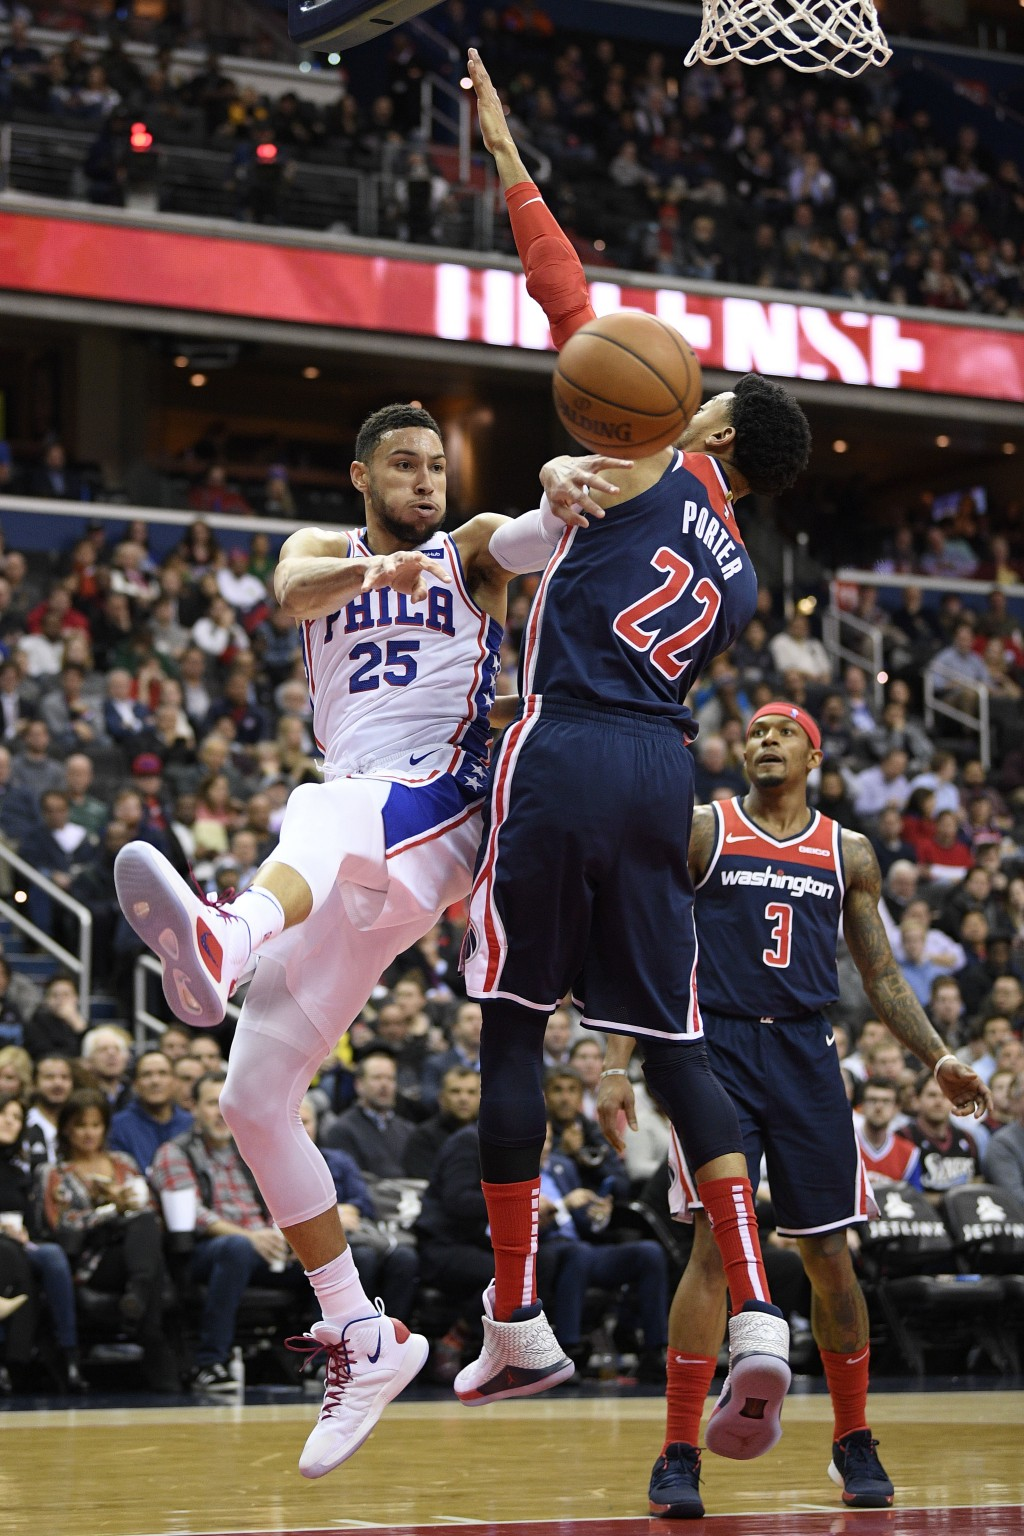 Philadelphia 76ers guard Ben Simmons (25) passes the ball against Washington Wizards forward Otto Porter Jr. (22) and guard Bradley Beal (3) during th